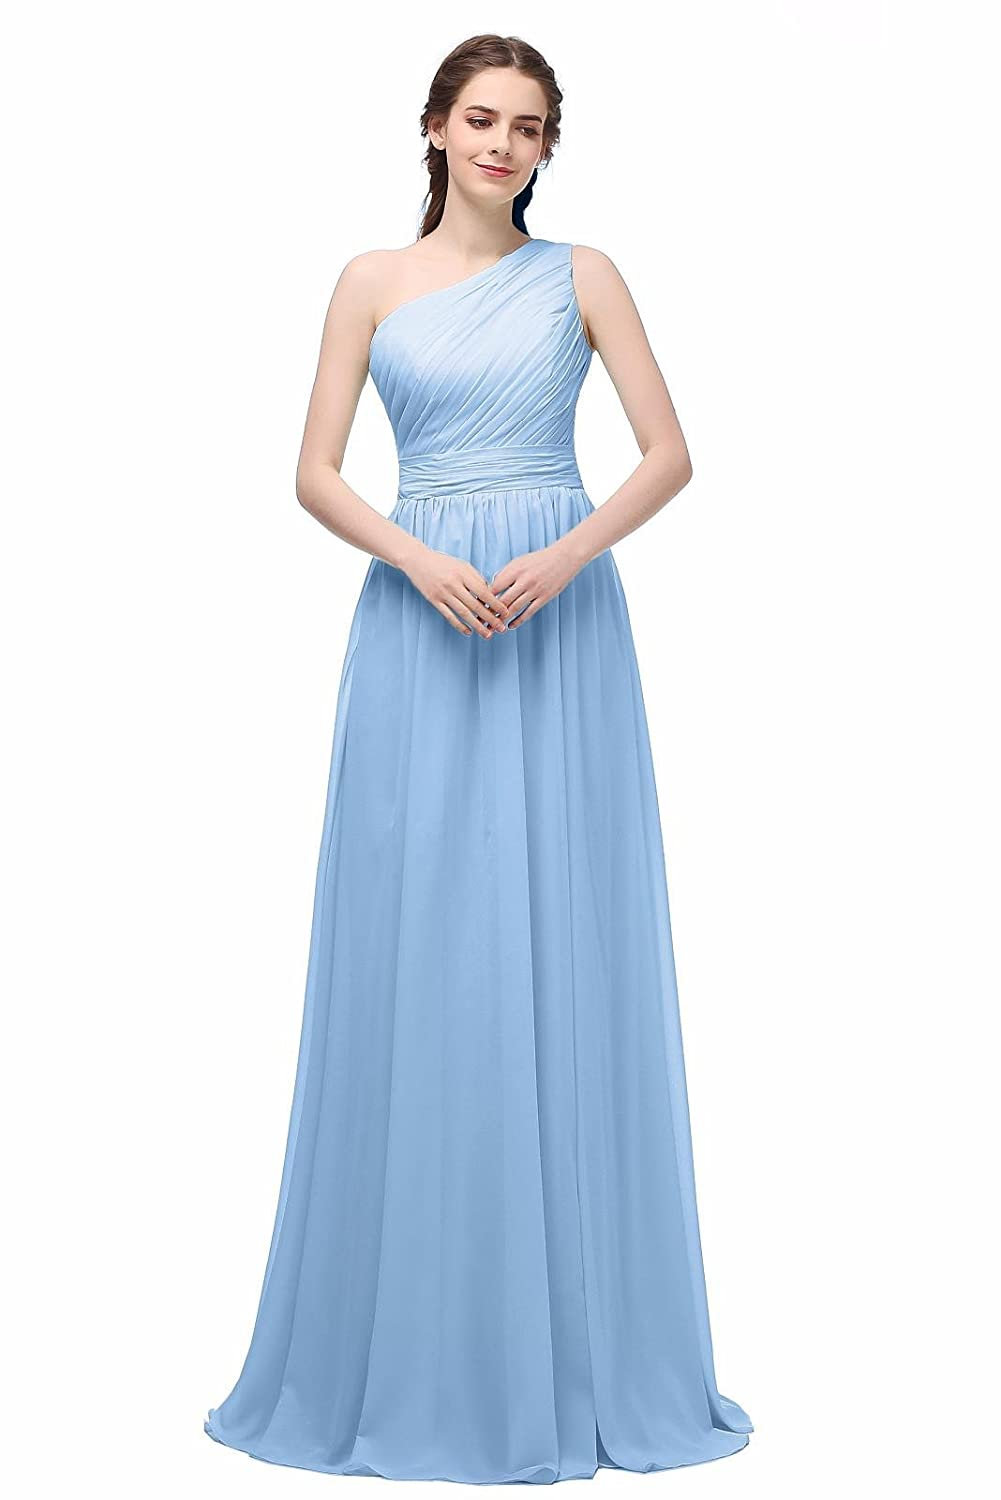 Bridesmaid dresses amazon womens bridesmaid chiffon prom dresses long evening gowns ombrellifo Image collections